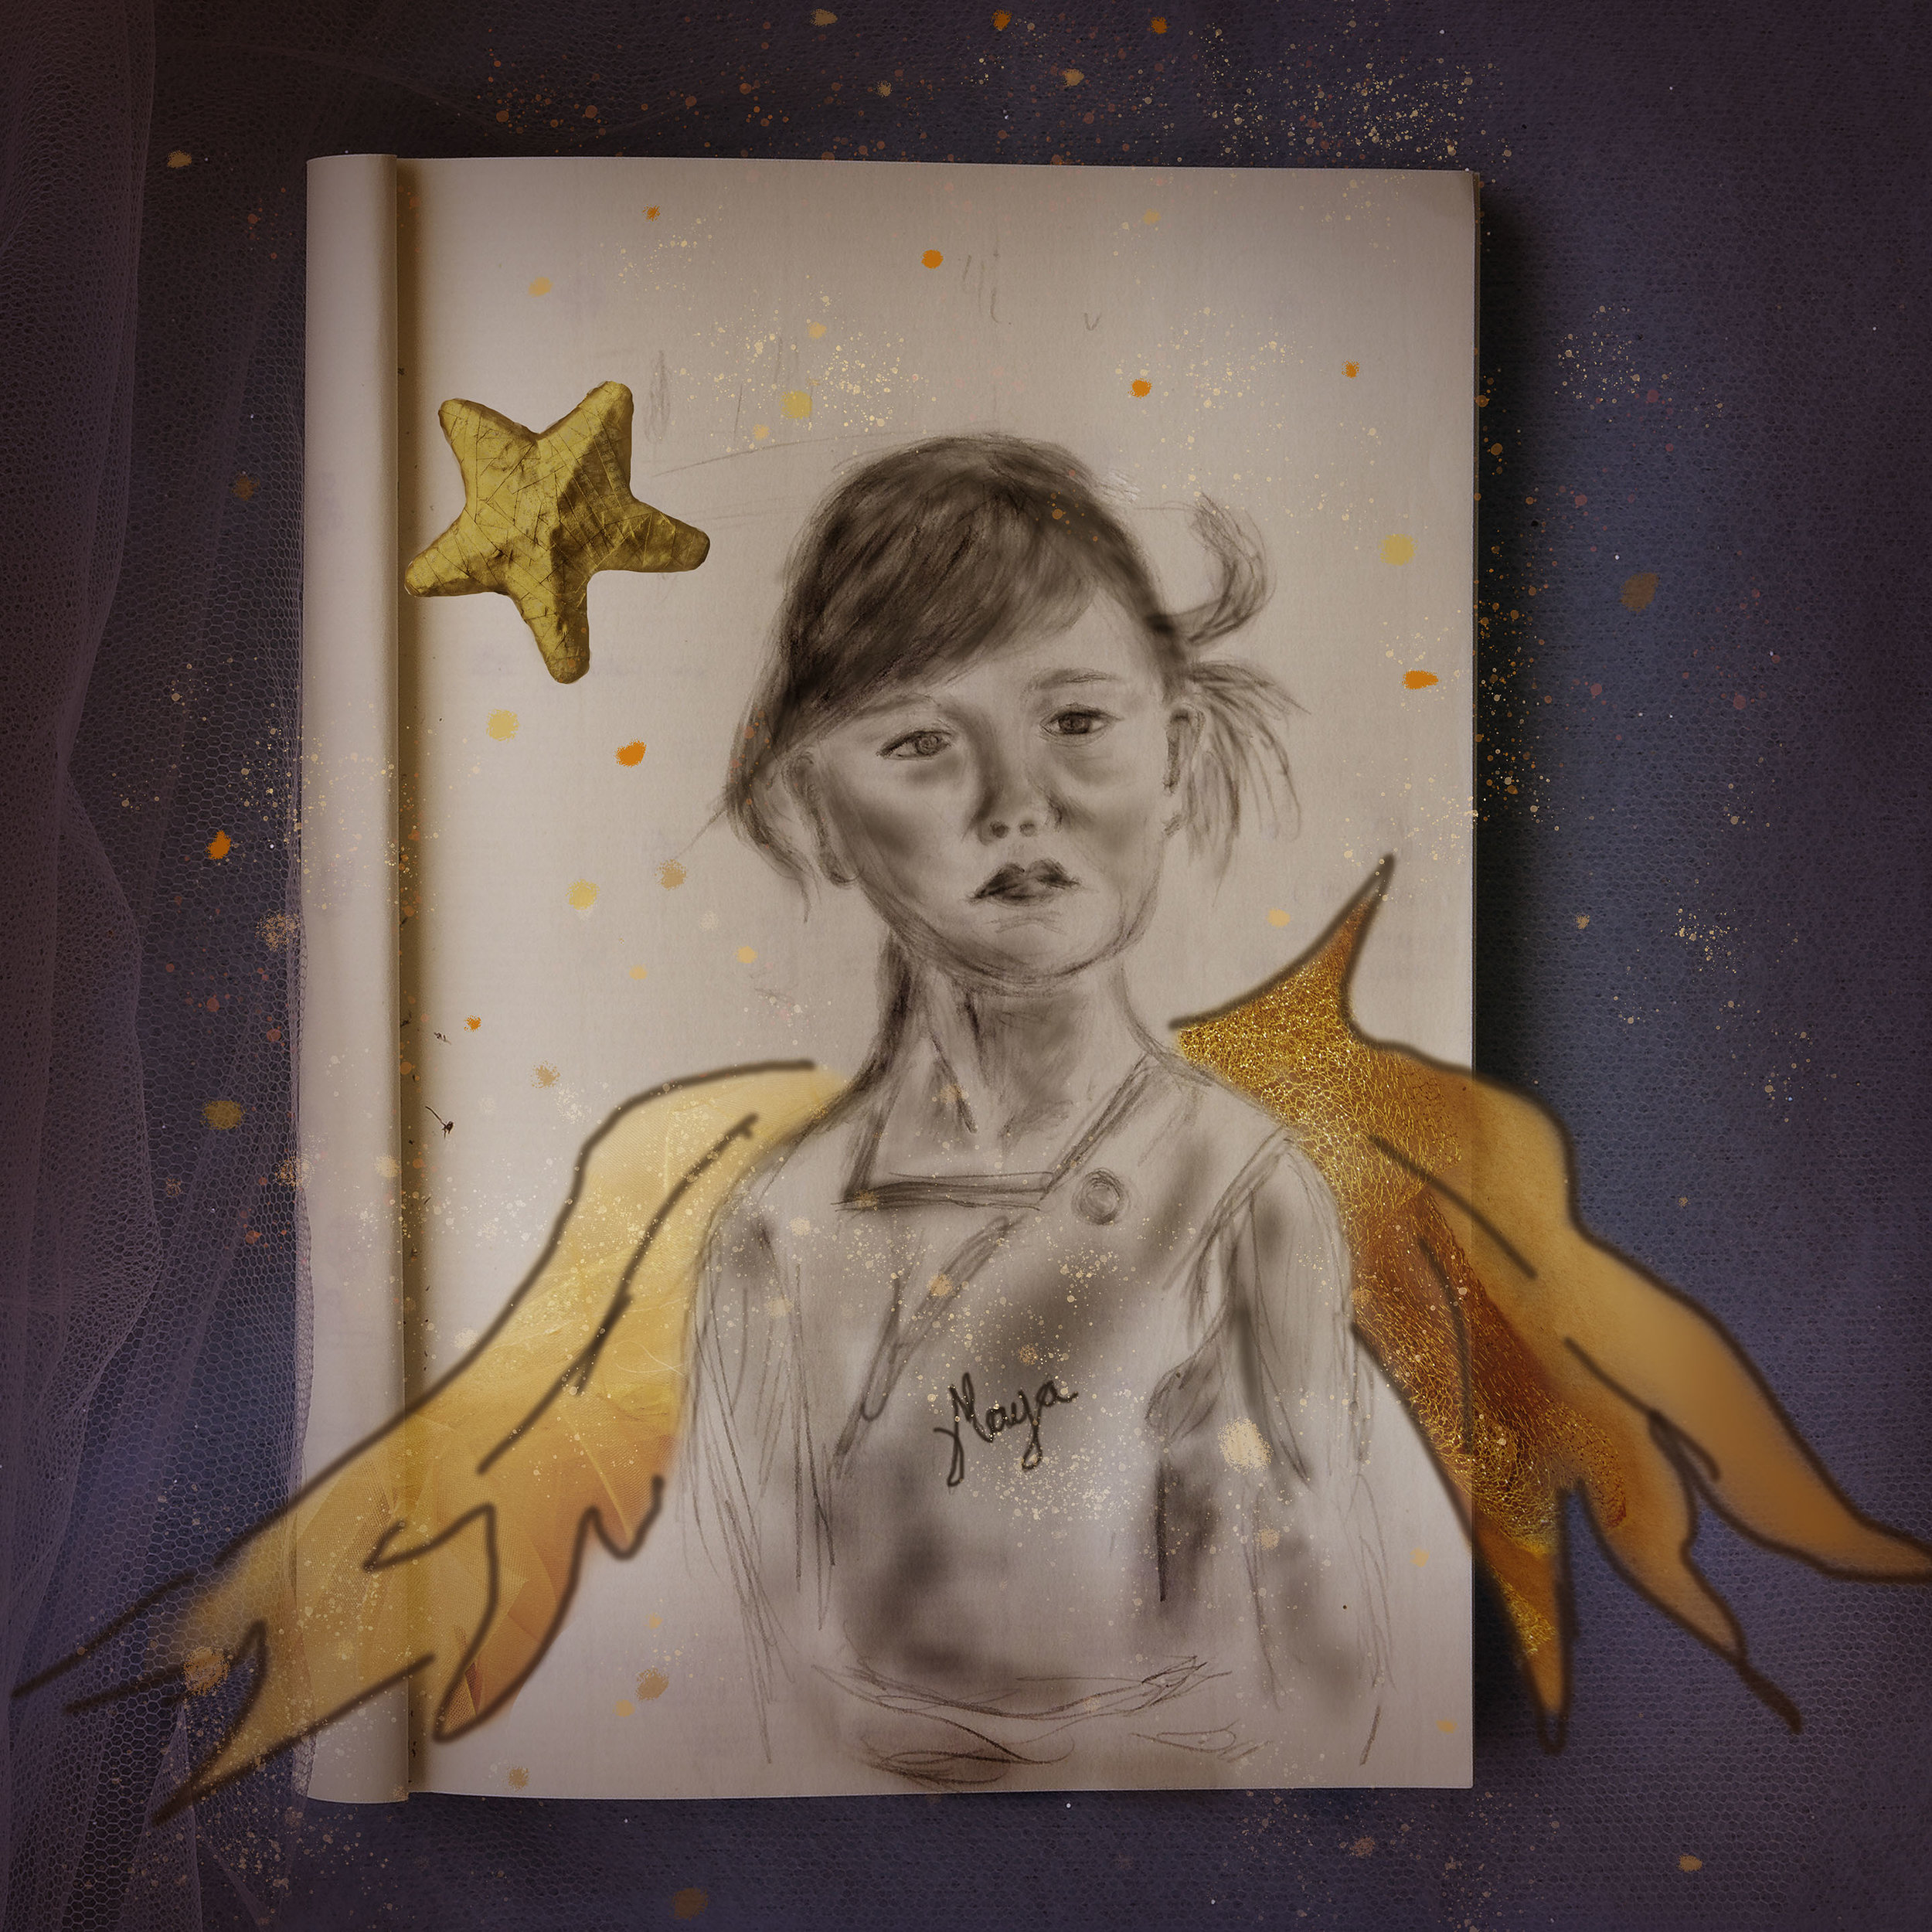 Storyboard sketches - Maya sketch of a childhood photograph and a distinctive look which inspired the piece